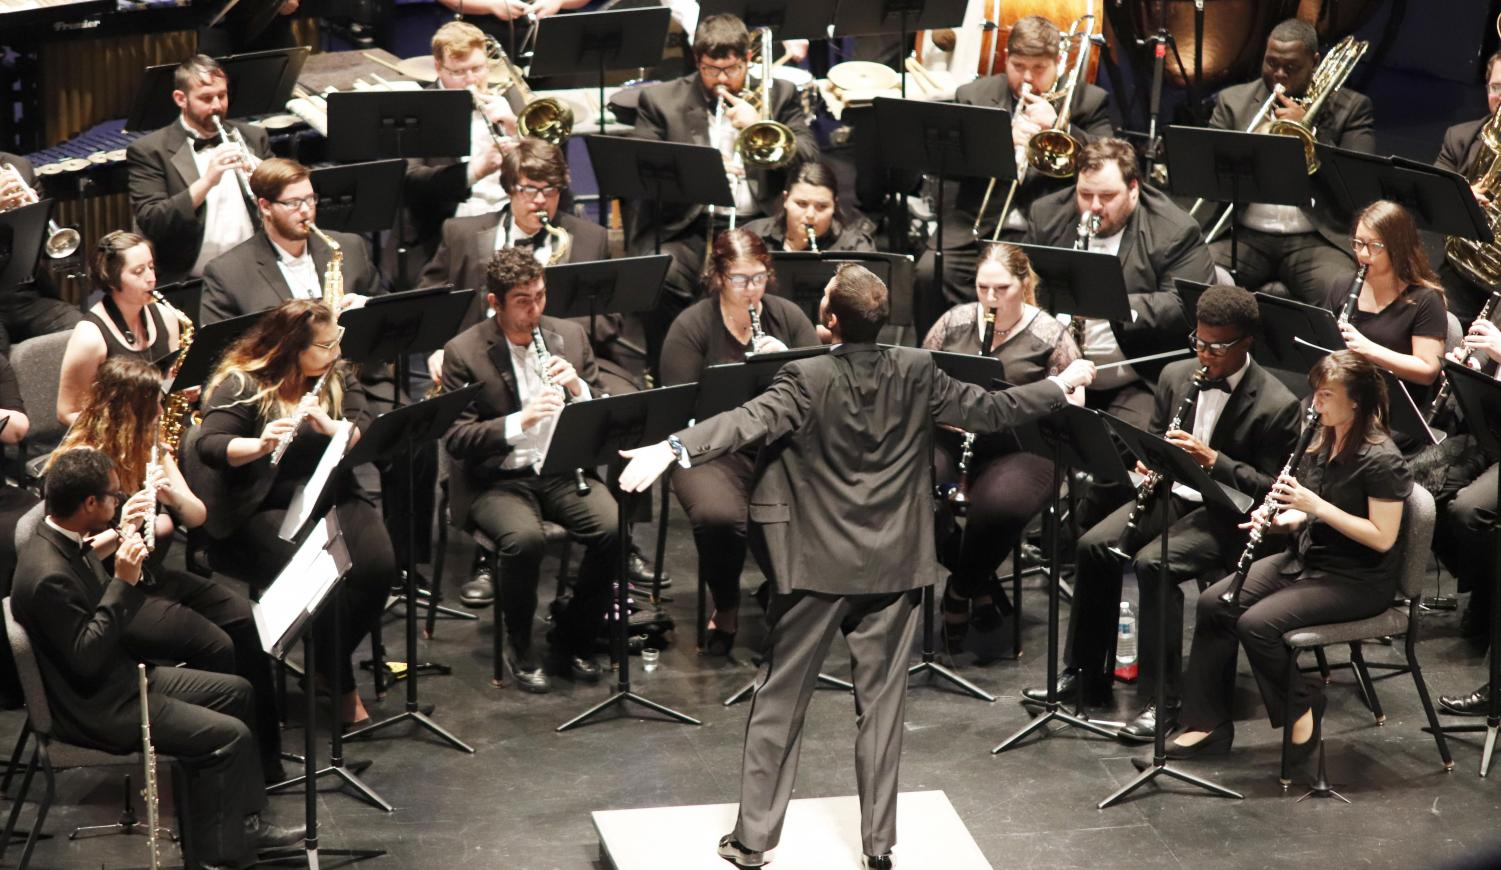 Derek Stoughton, conductor of the Wind Symphony, directs the performers in a concert that calls back to the medieval renaissance. The concert was the symphony's last production of the season.